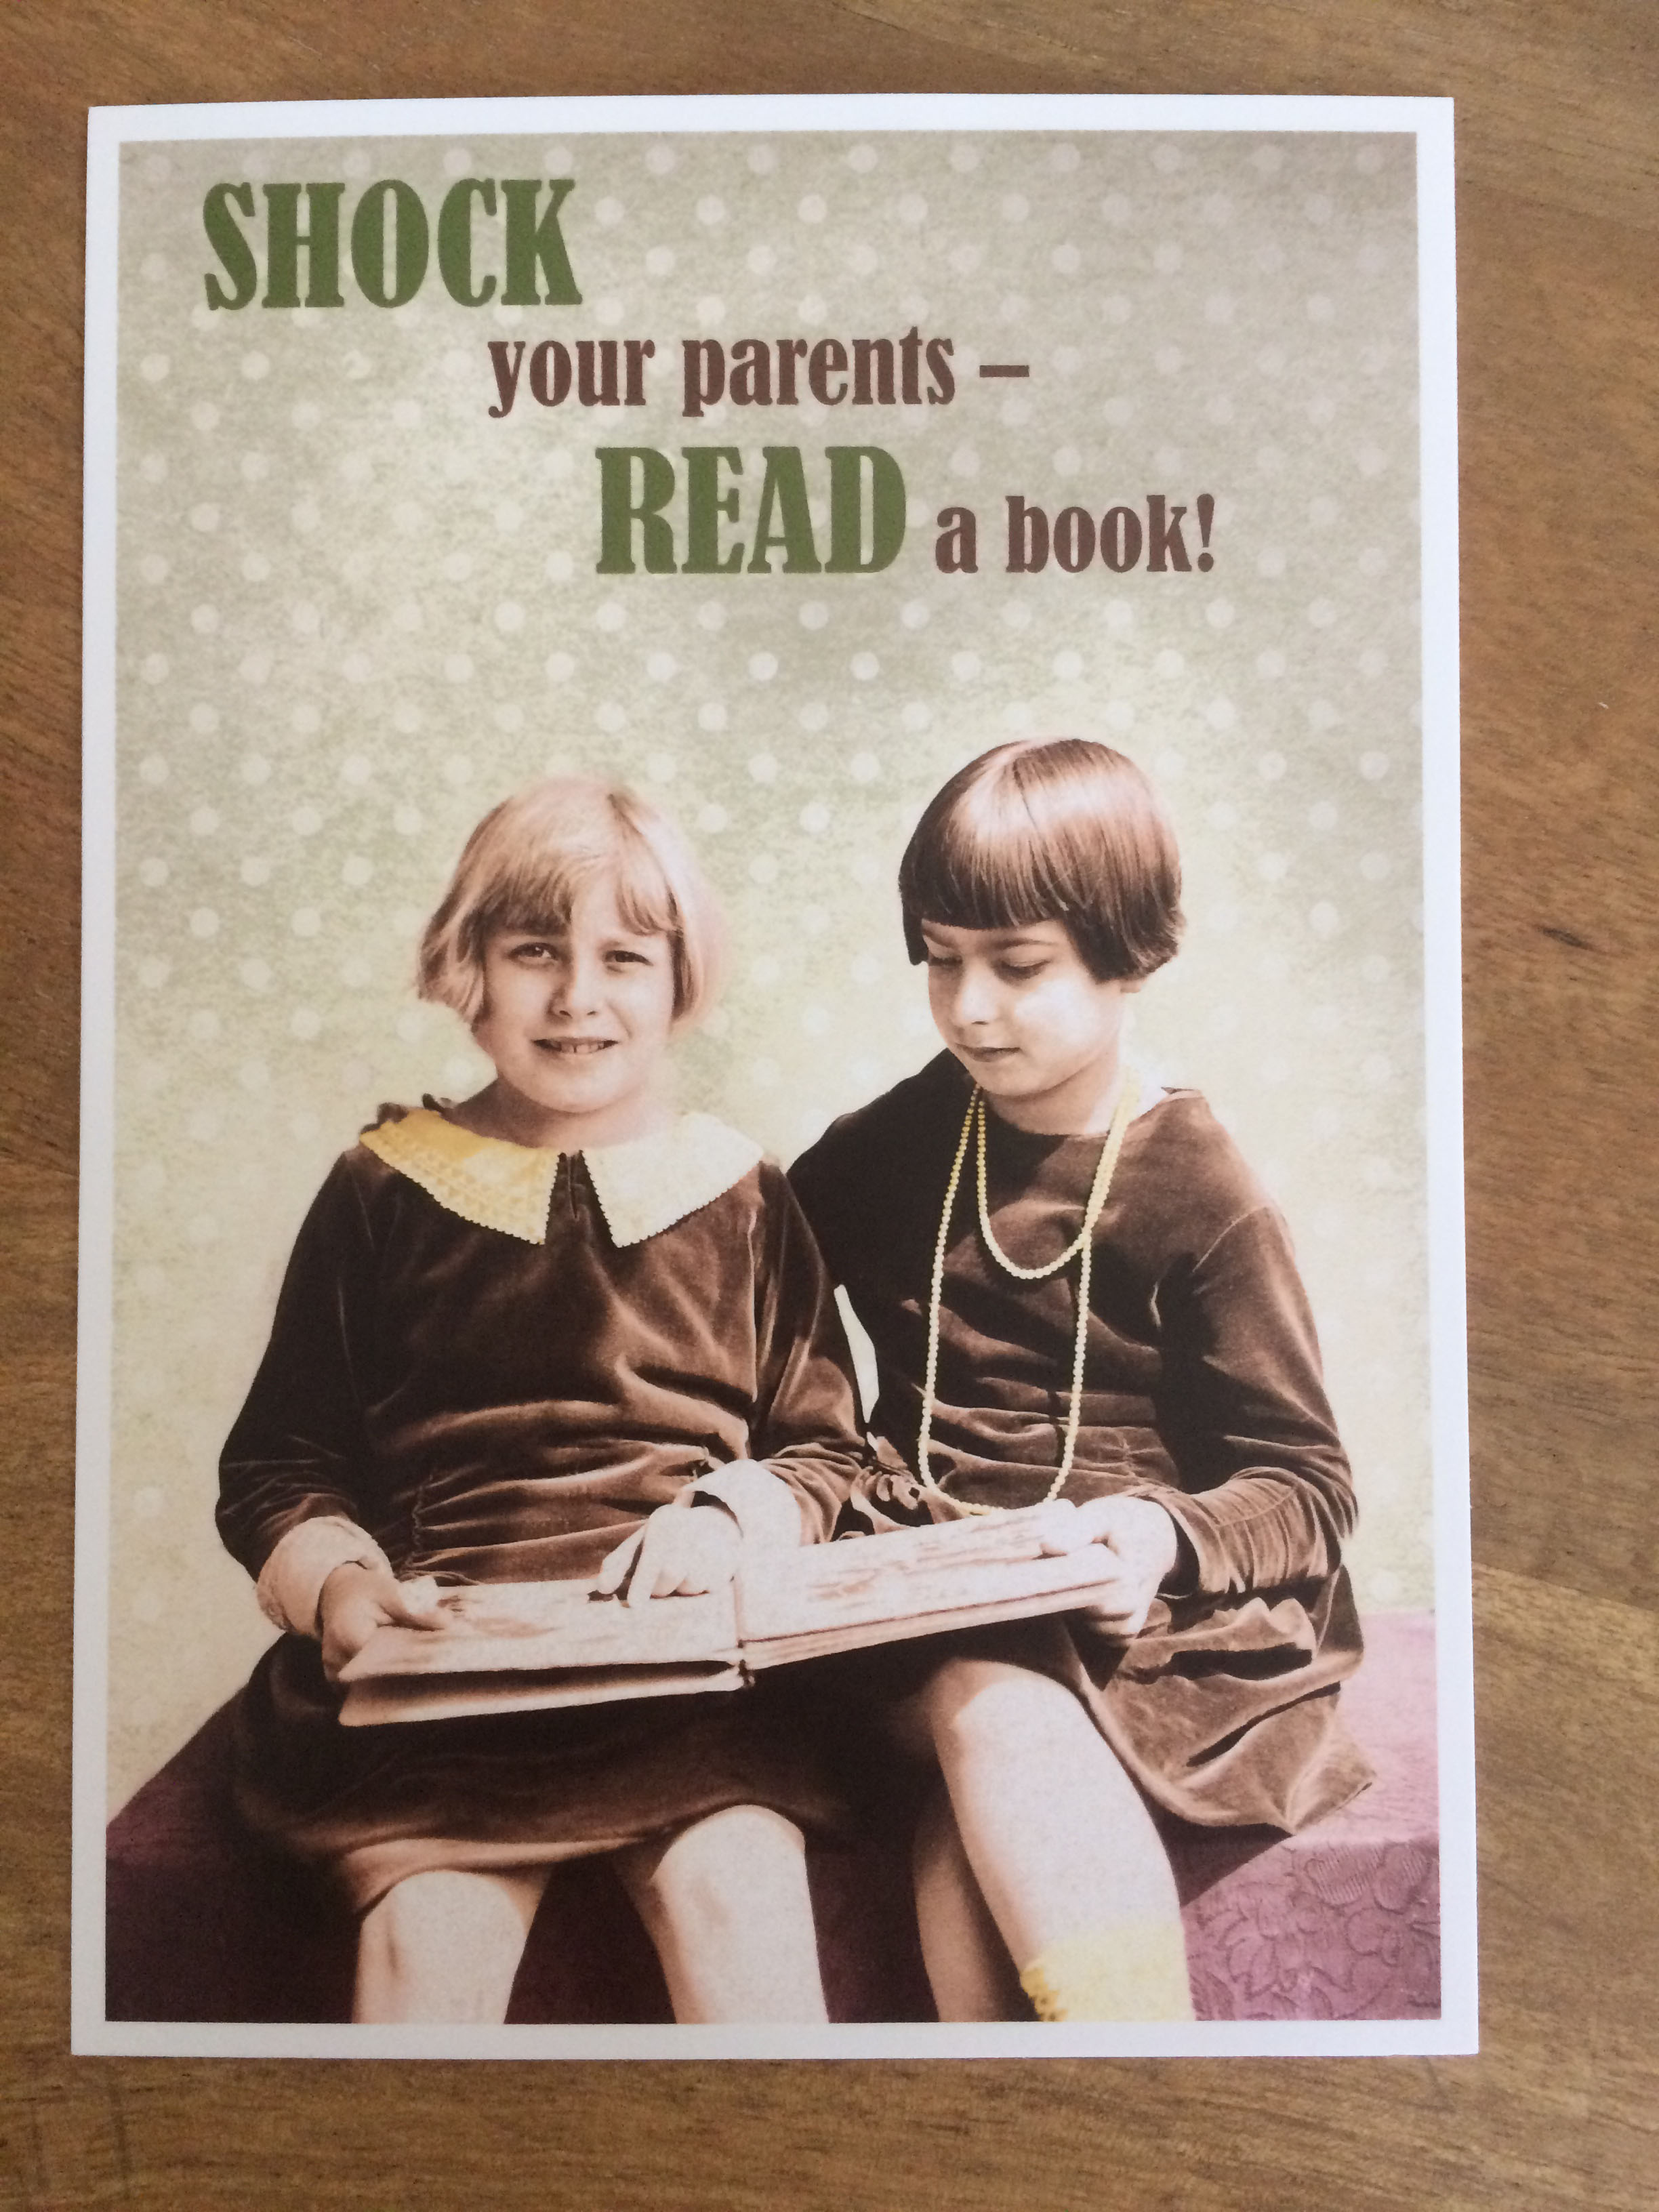 Postkarte Karte Shock your parents read a book Paloma